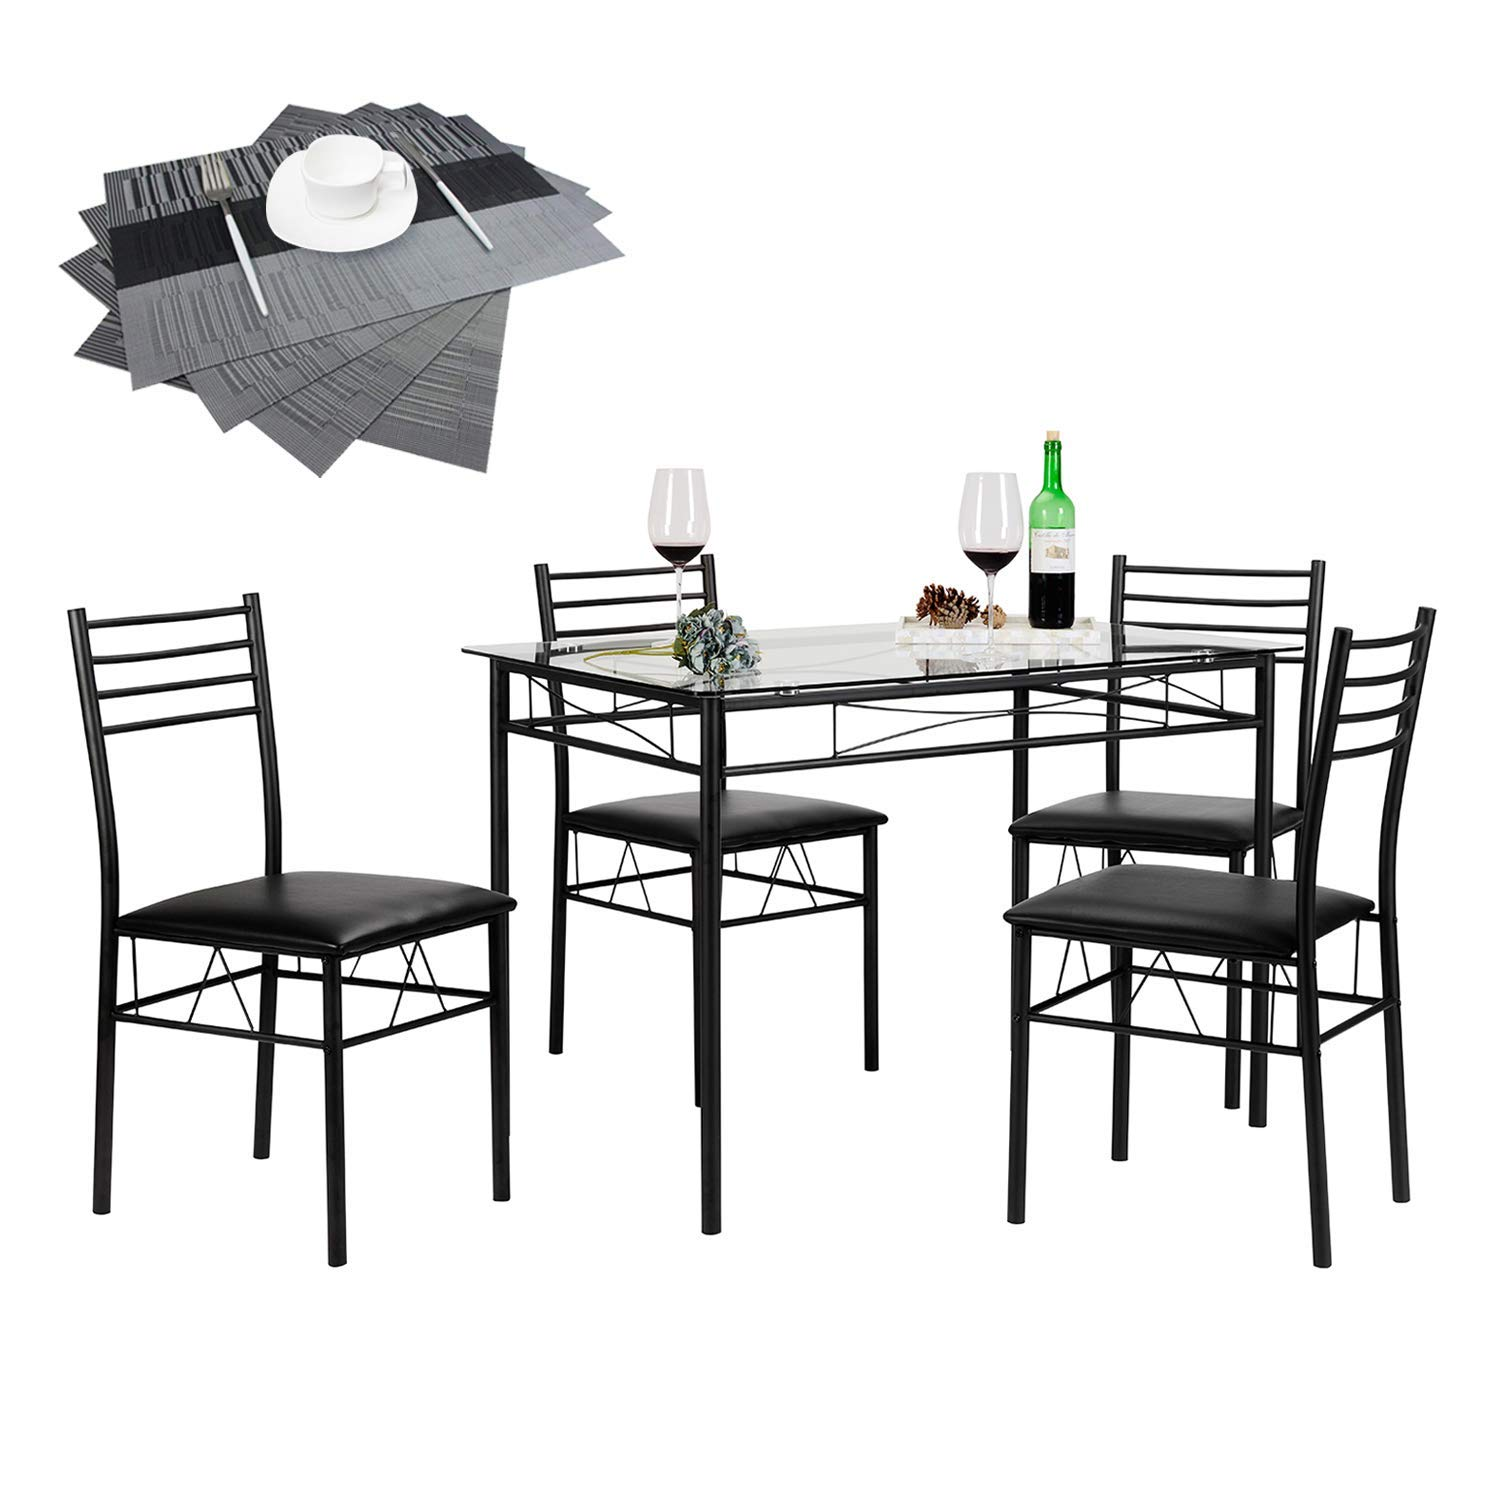 vecelo piece dining table set with chairs placemats accent pieces included black kitchen beach clock yellow patio umbrella pottery barn folding stained glass light full wall